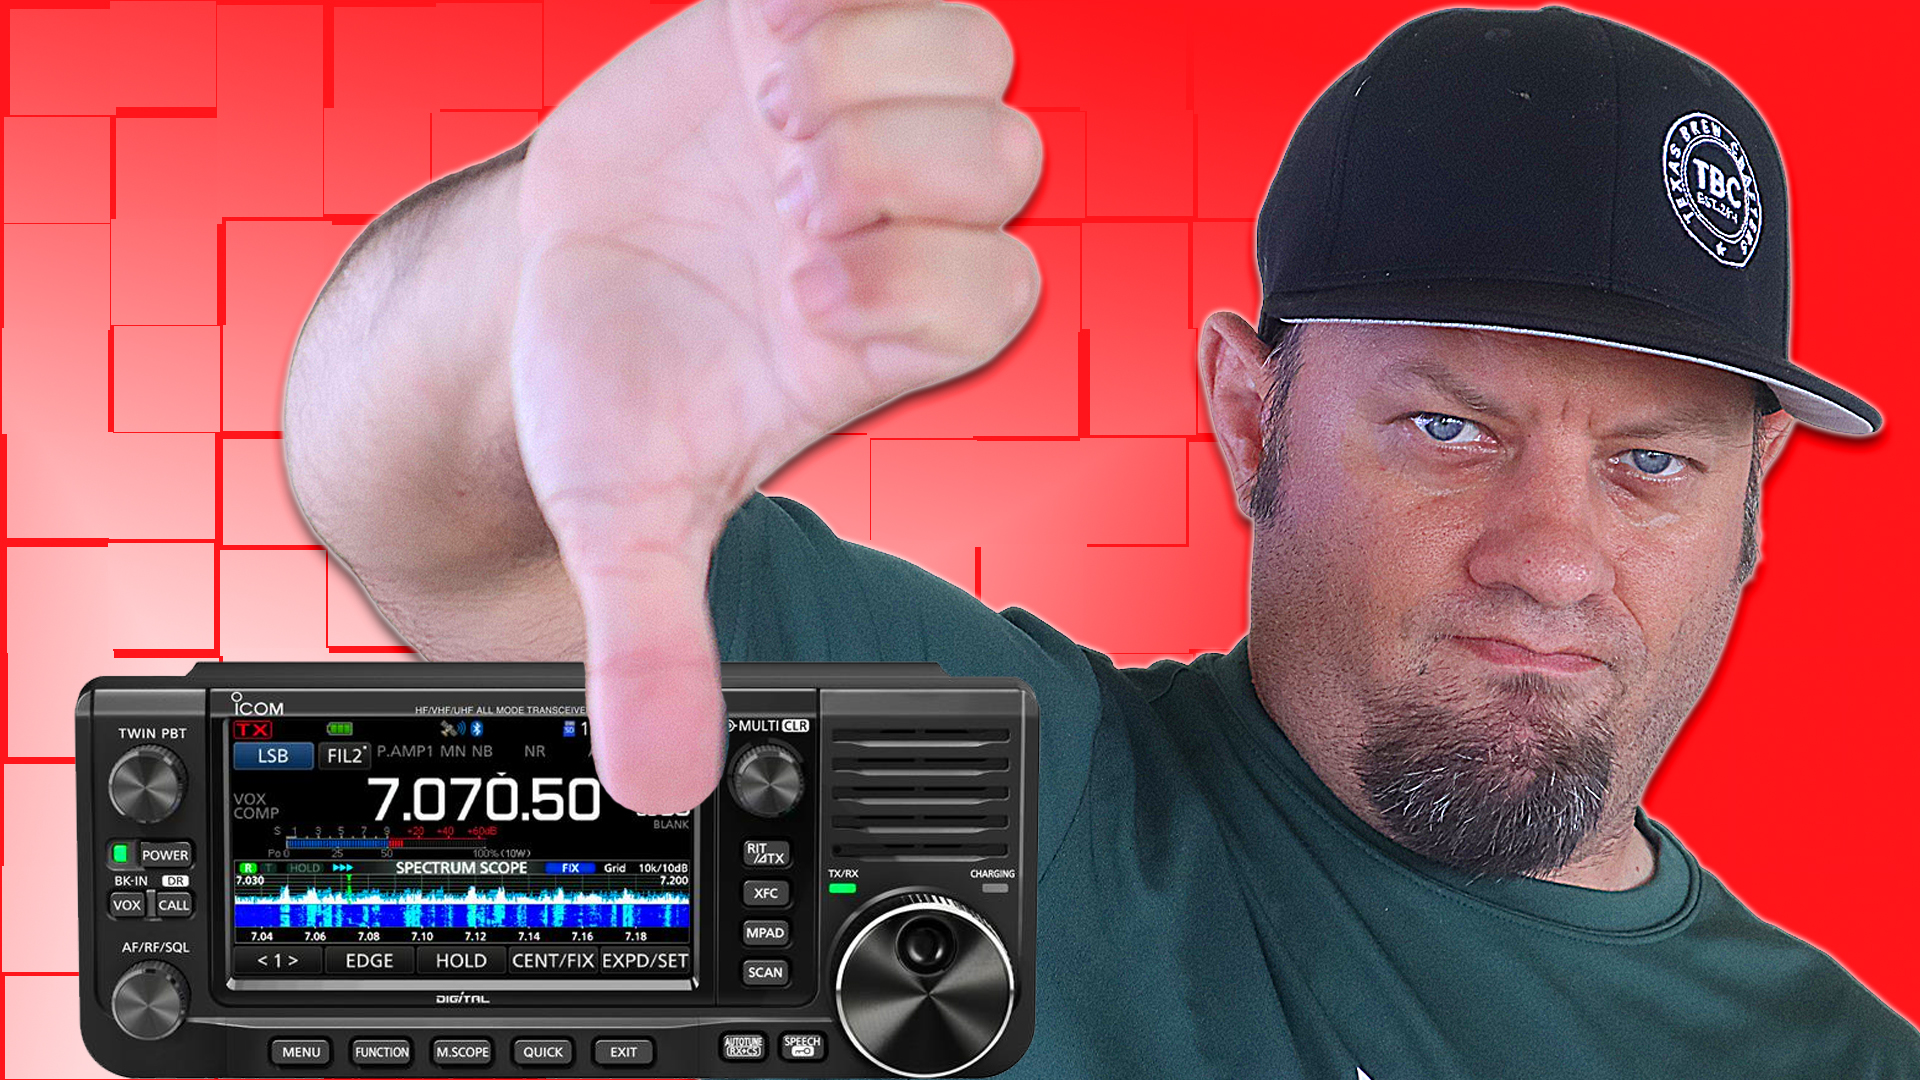 Episode 453: Should You or Should you NOT Buy an Icom IC-705? – Icom IC-705 News